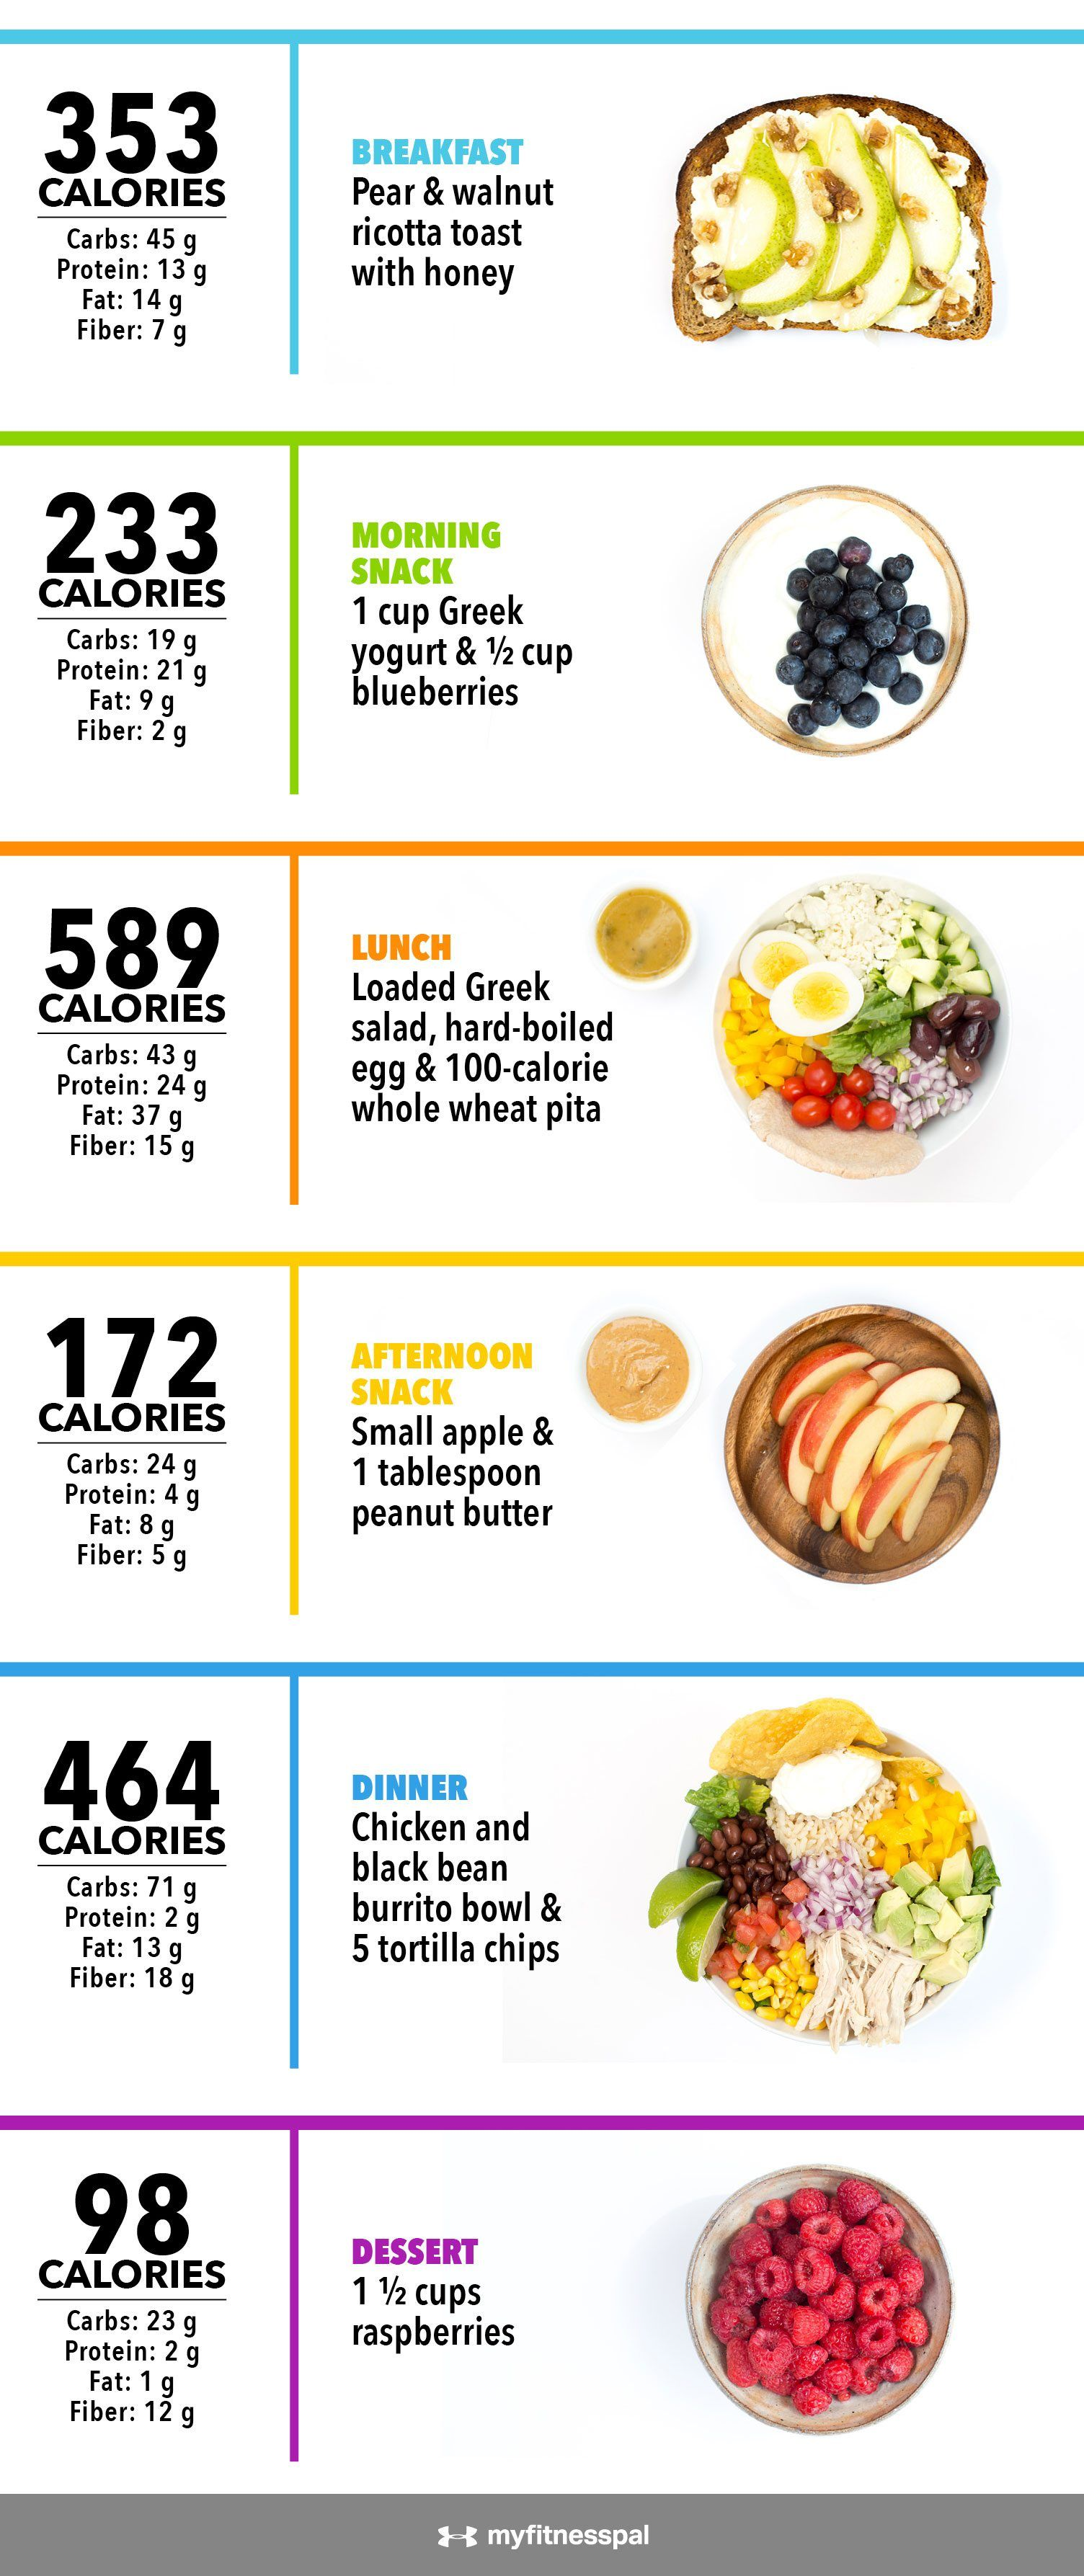 what 2 000 calories looks like infographic daily heath meal